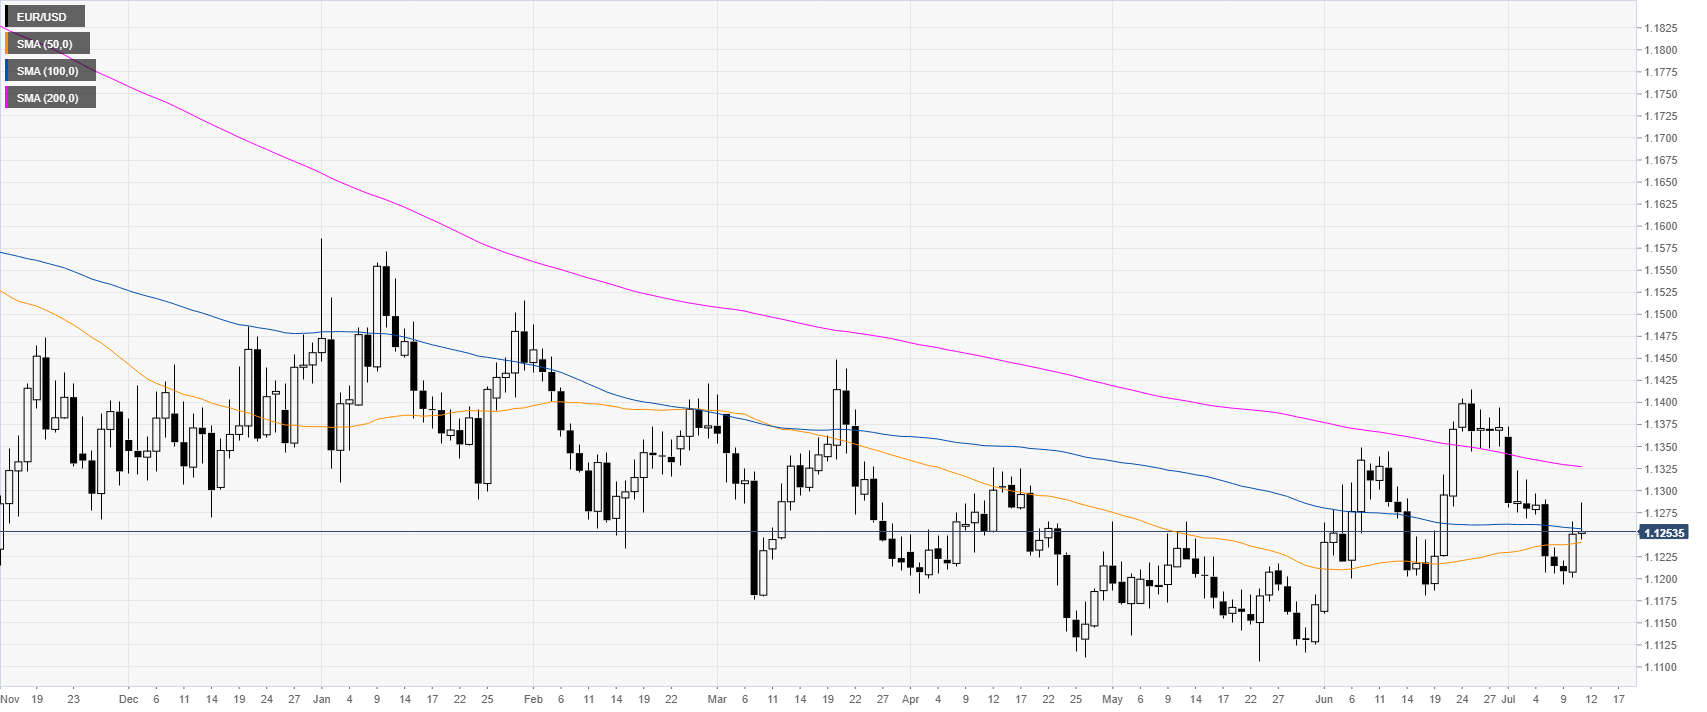 EUR/USD technical analysis: Fiber turning negative on the day, sub